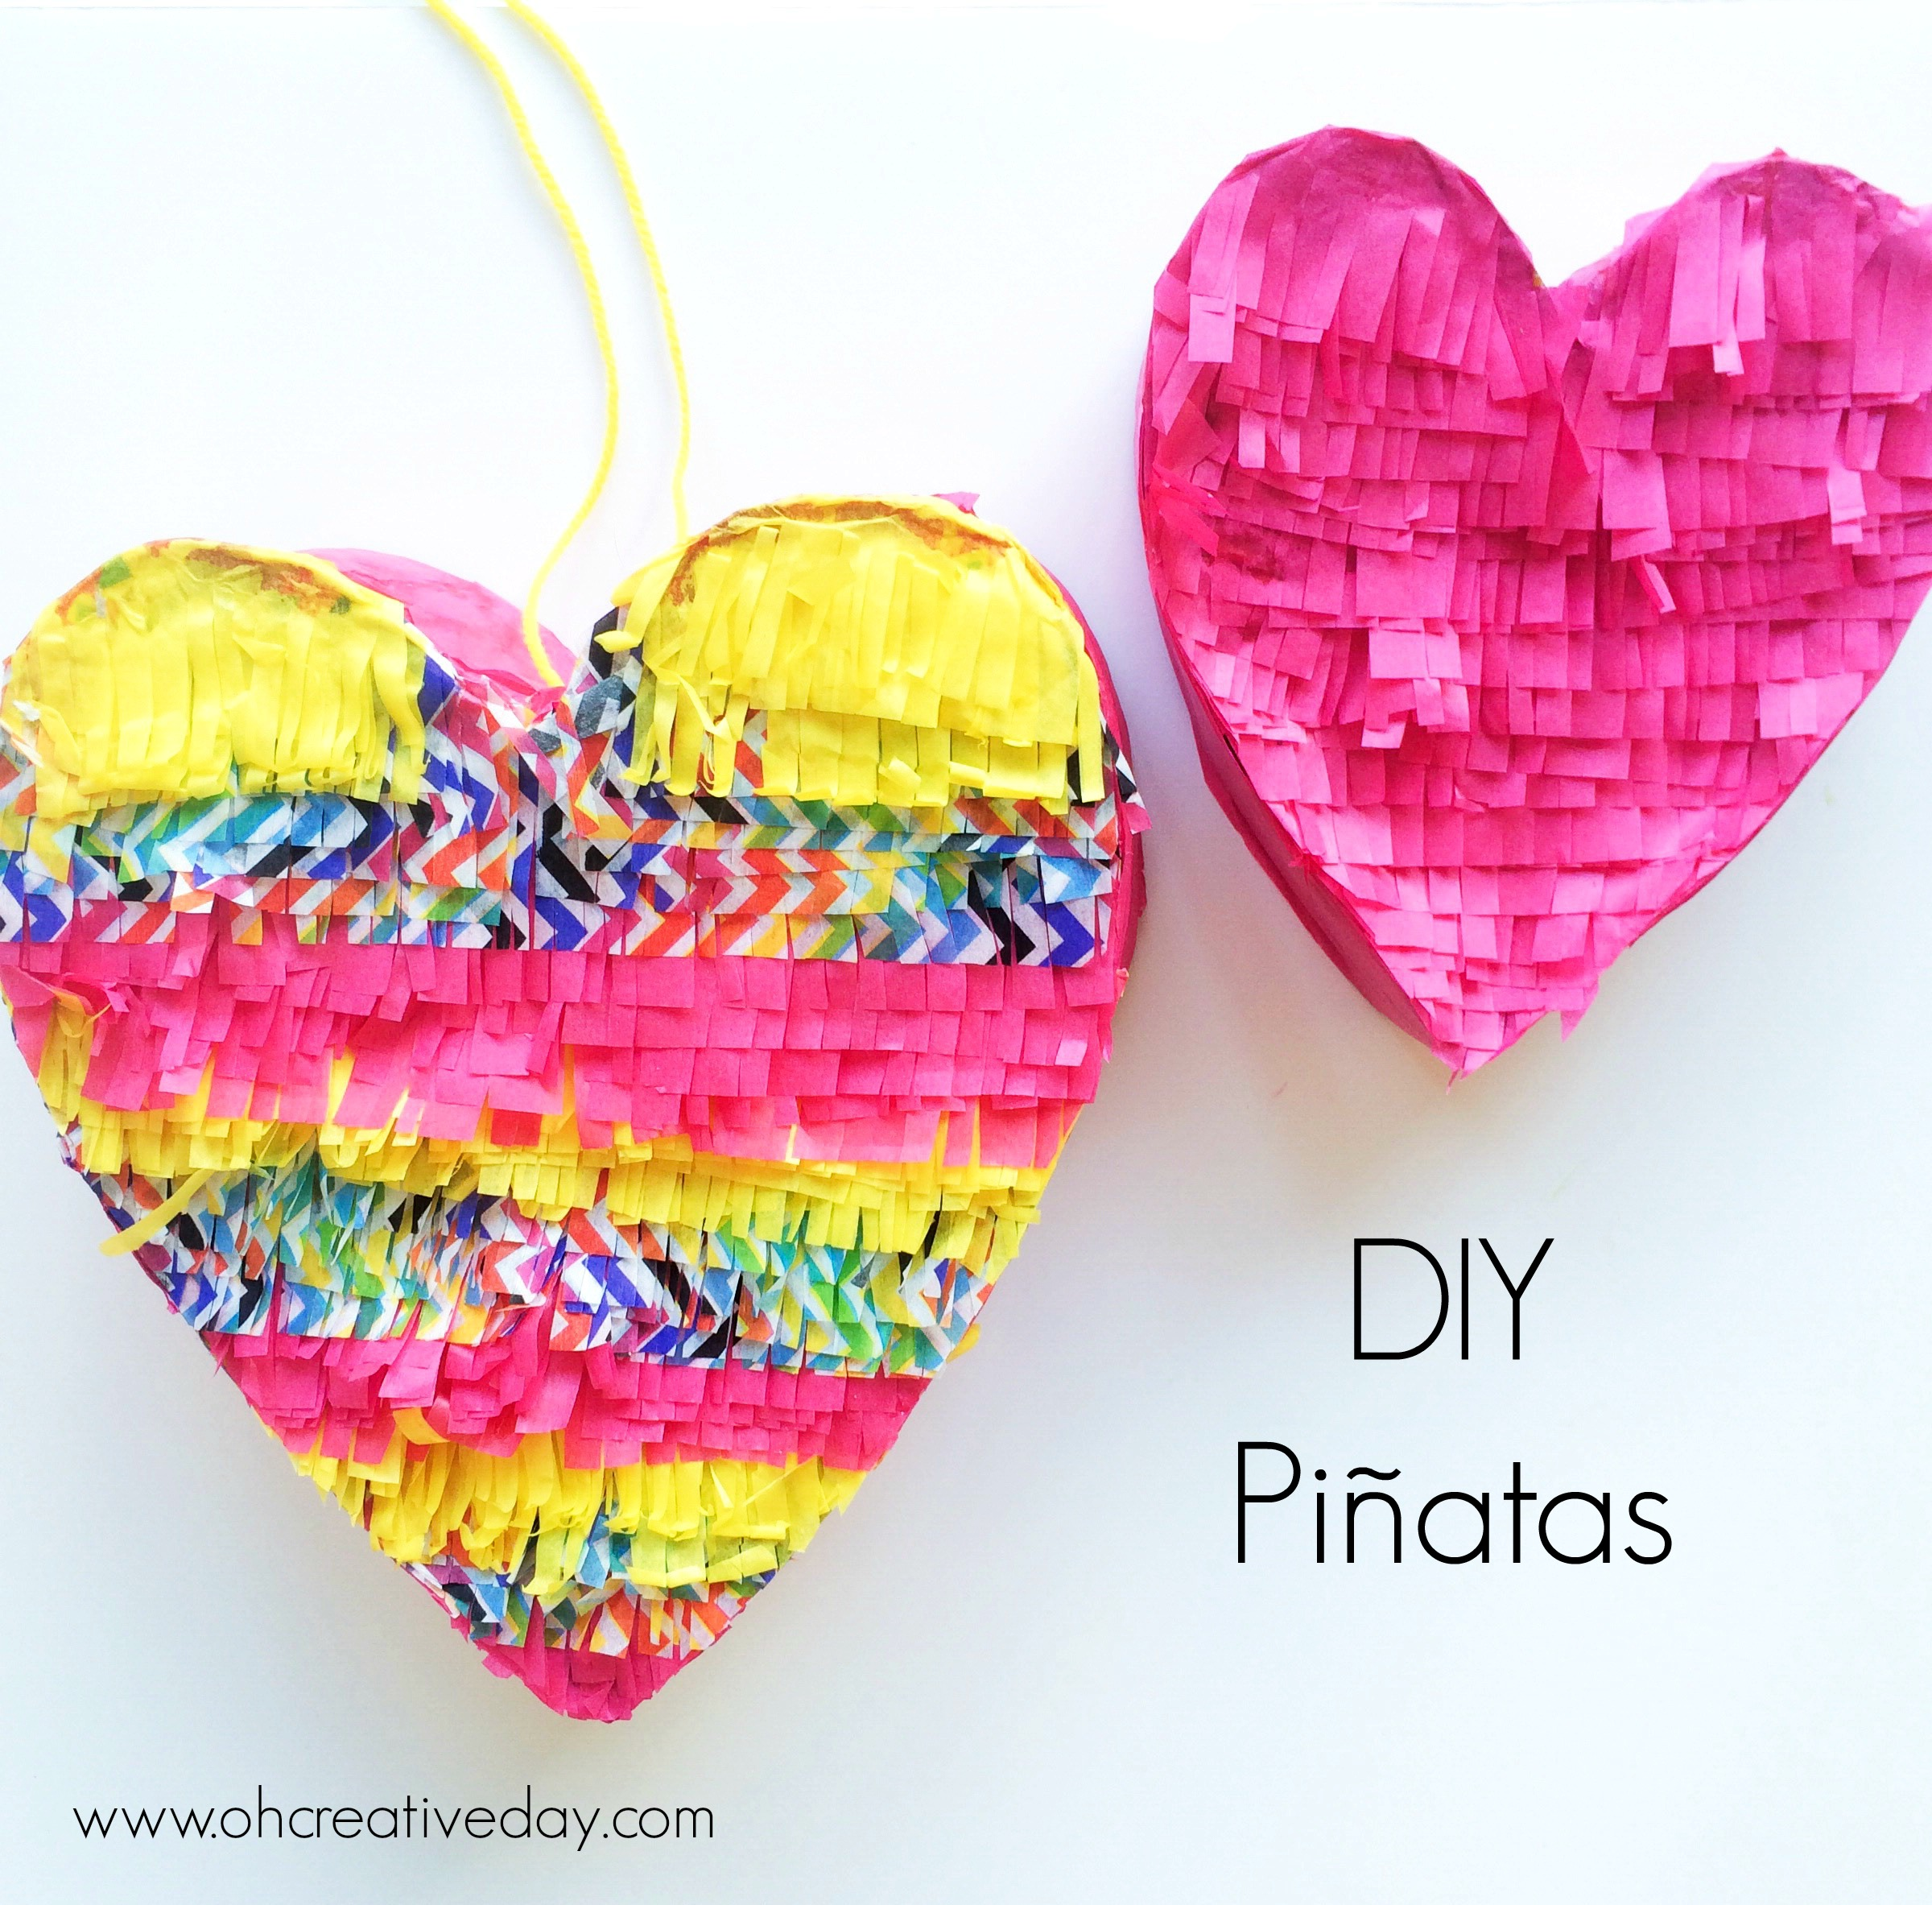 DIY Pinatas www.ohcreativeday.com